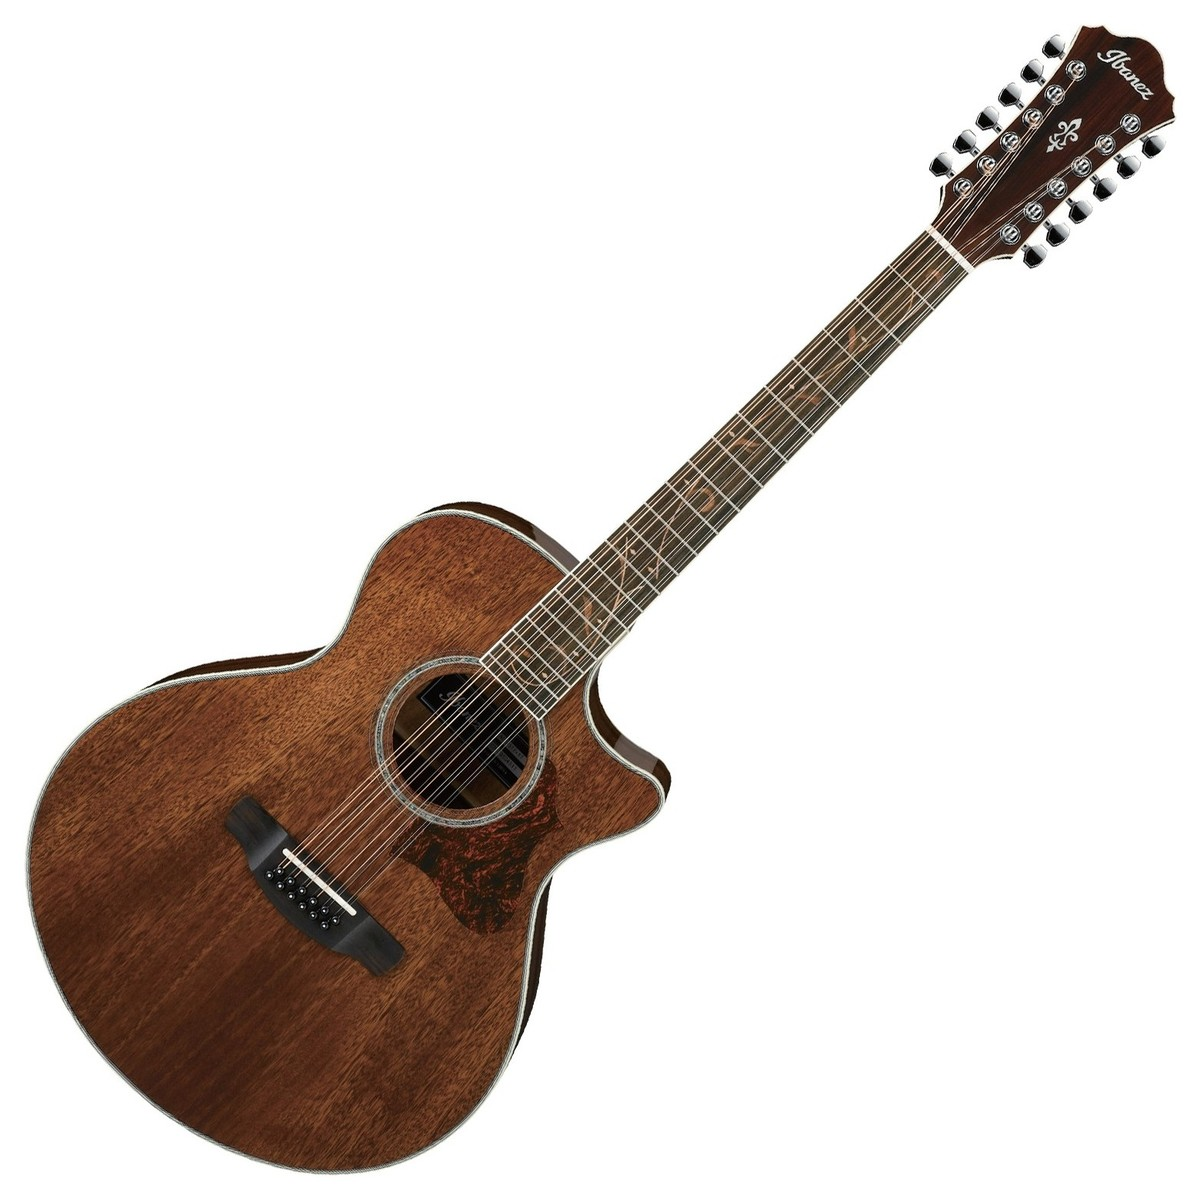 ibanez ae2412 12 string electro acoustic 2018 natural at gear4music. Black Bedroom Furniture Sets. Home Design Ideas